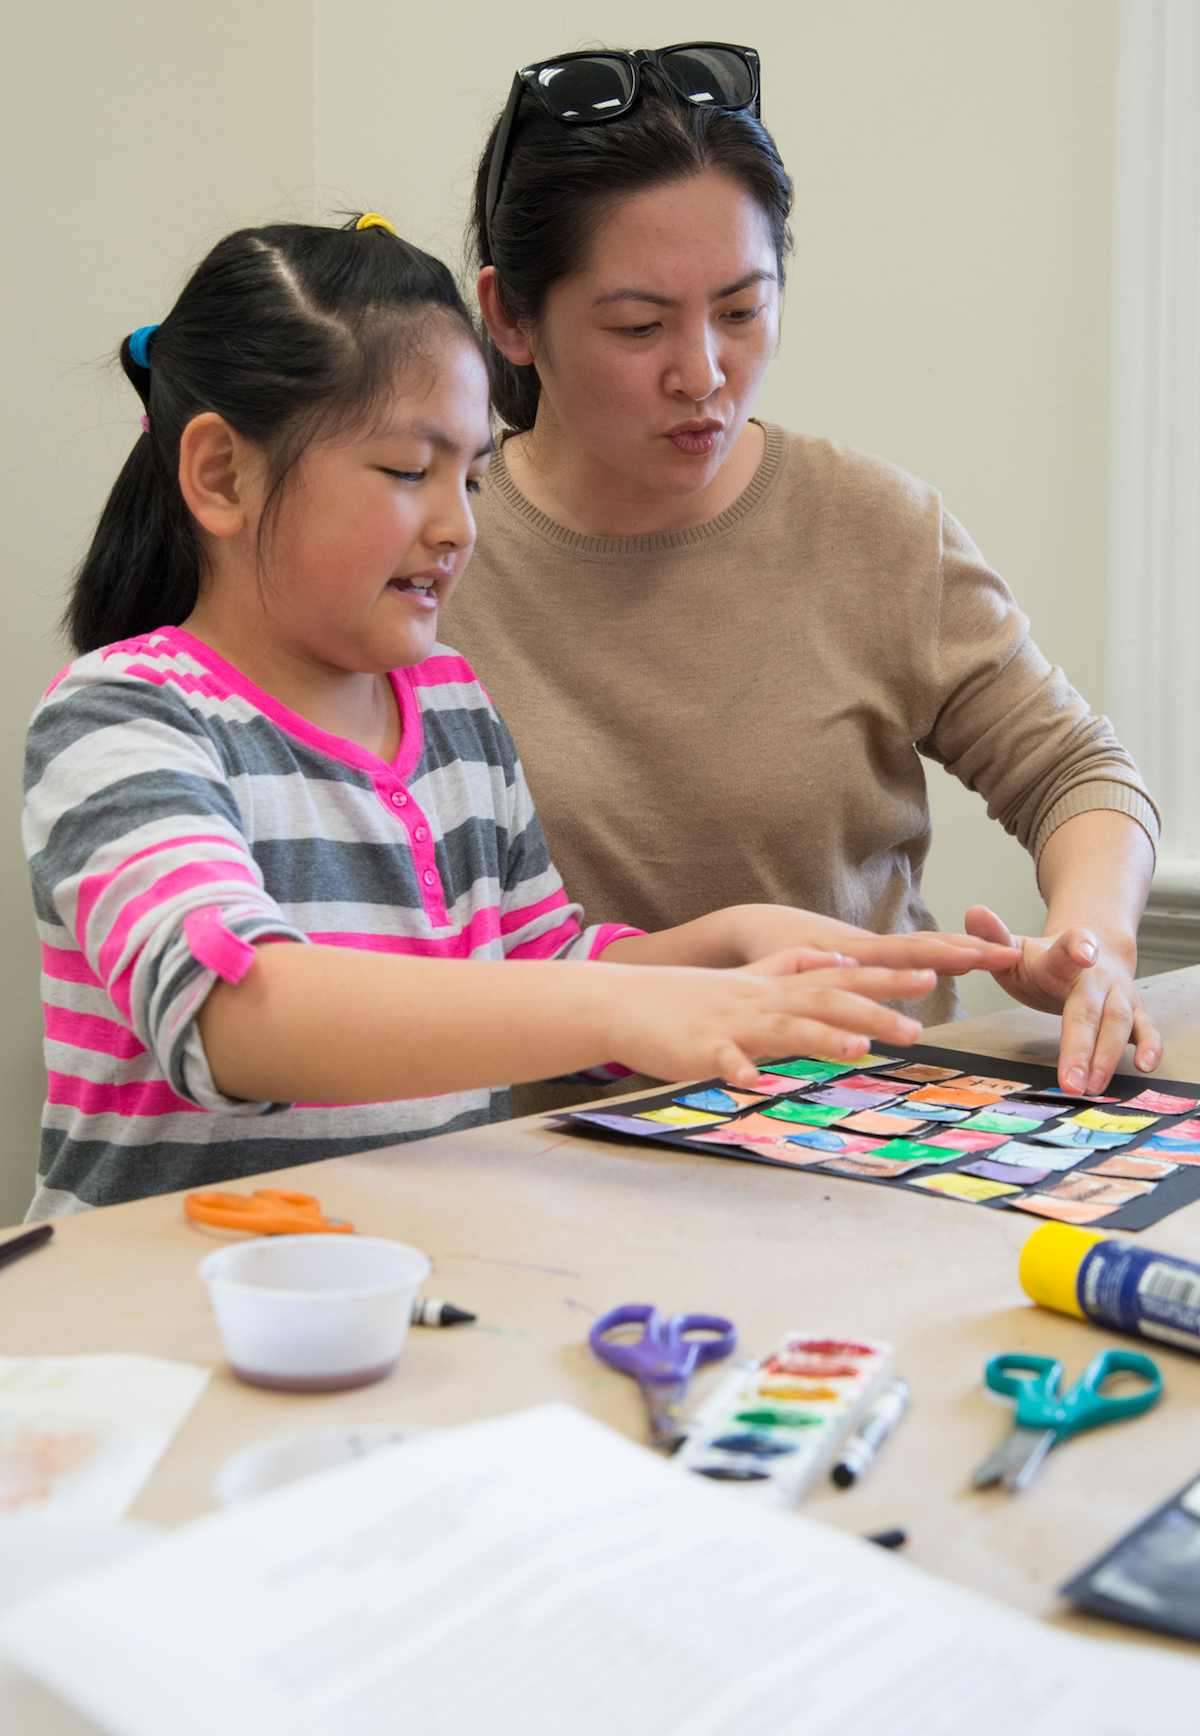 Ling helps her daughter Sarah with her art project. (Robert McGraw/WOUB)